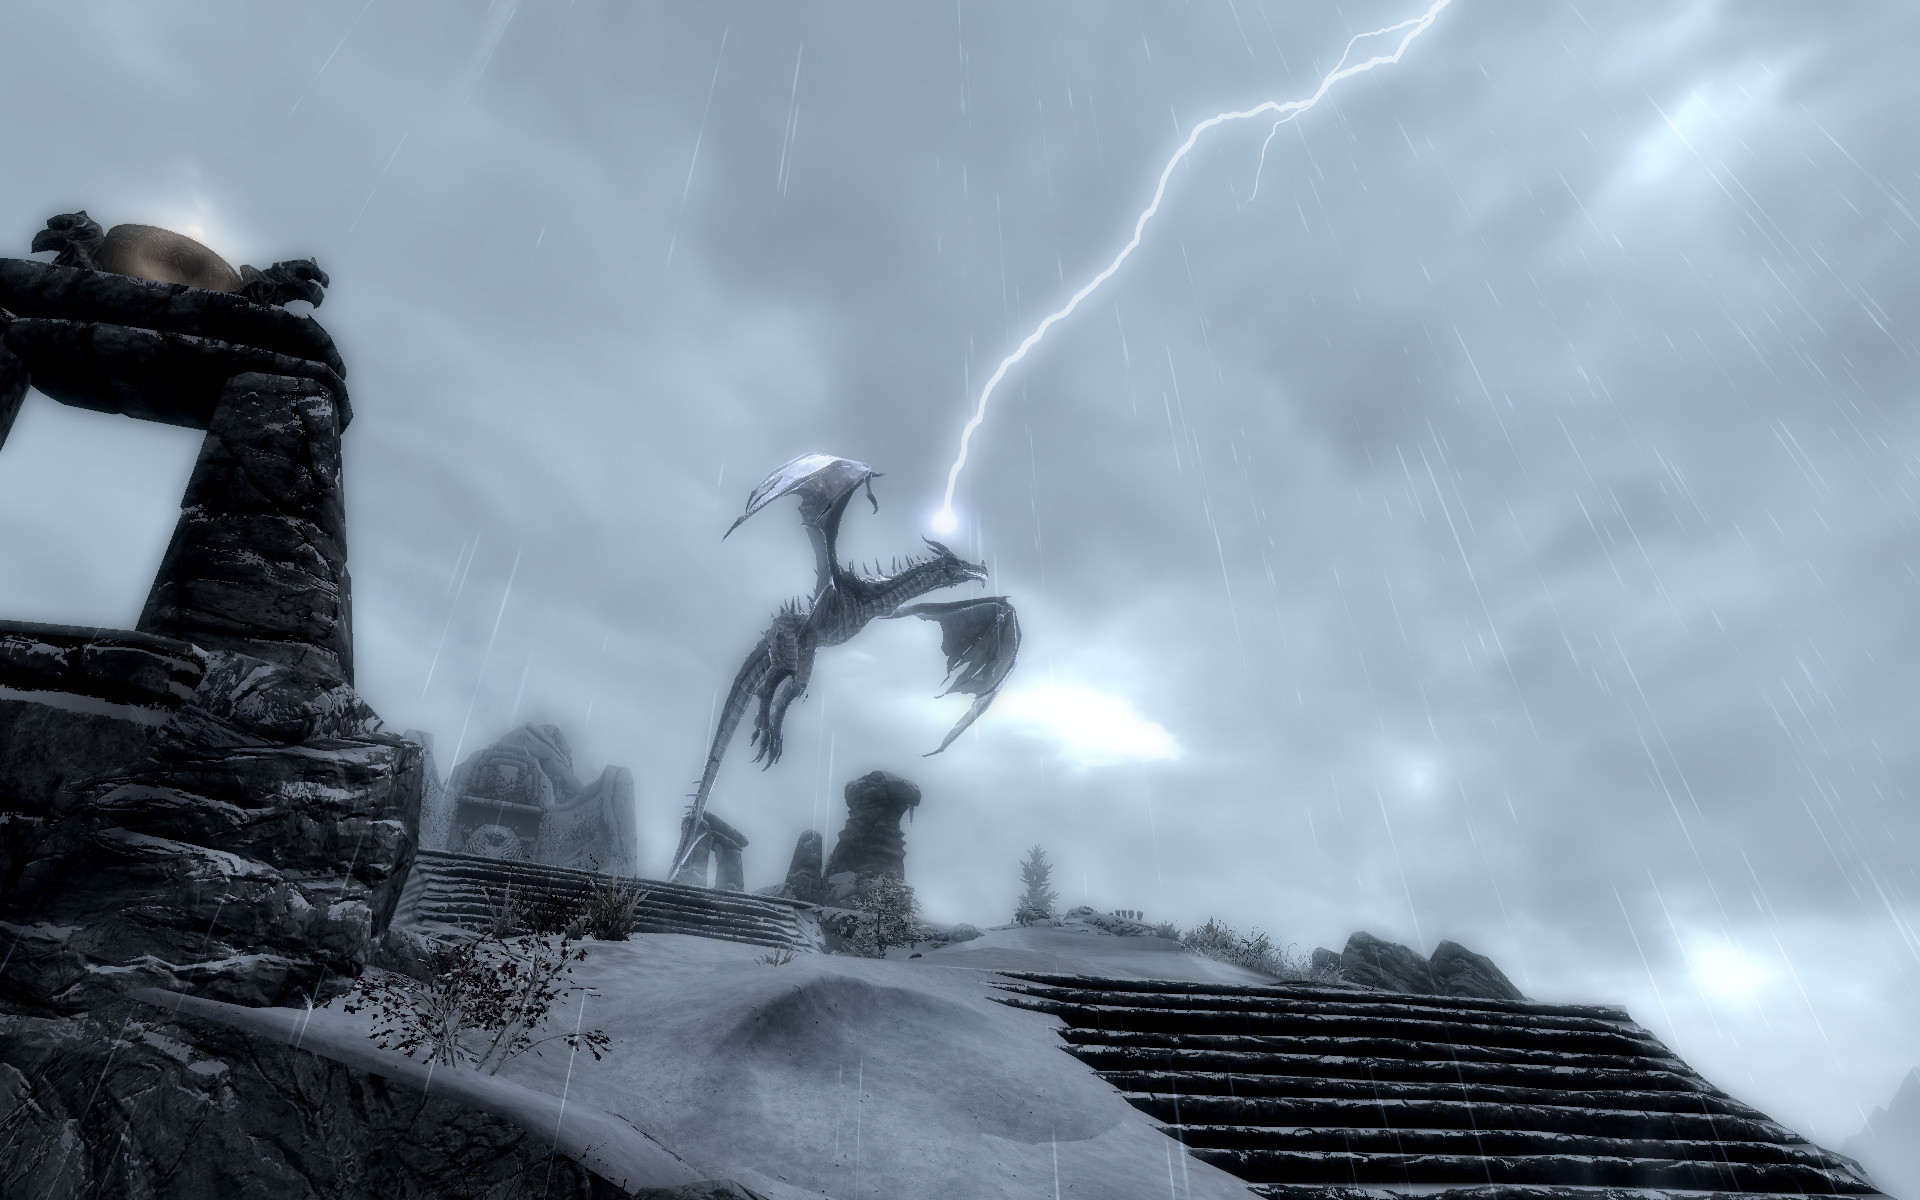 Storm Call shout will bring a crazy lightning storm and zap the dragon.